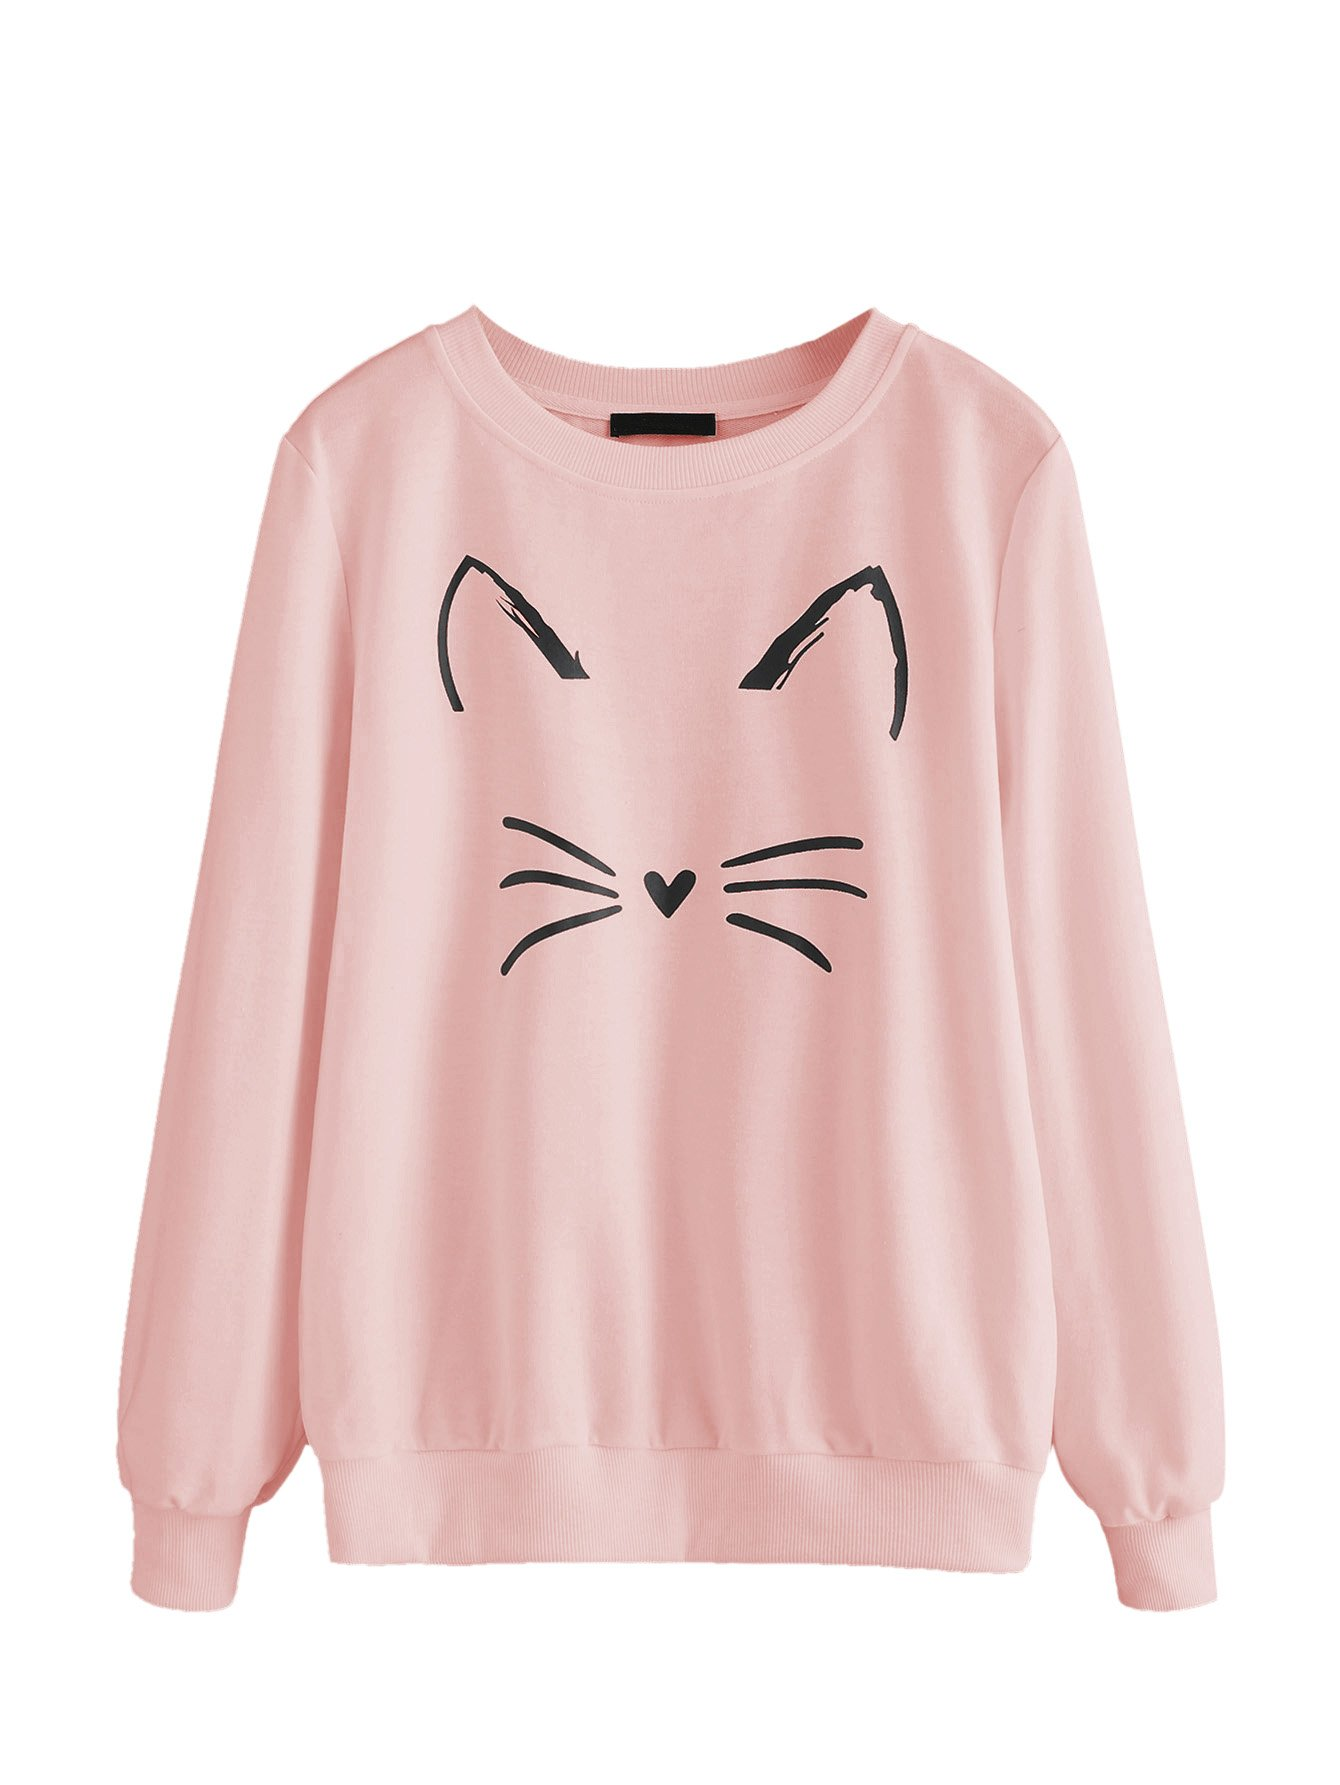 ROMWE Women's Cat Print Sweatshirt Long Sleeve Loose Pullover Shirt Pink S